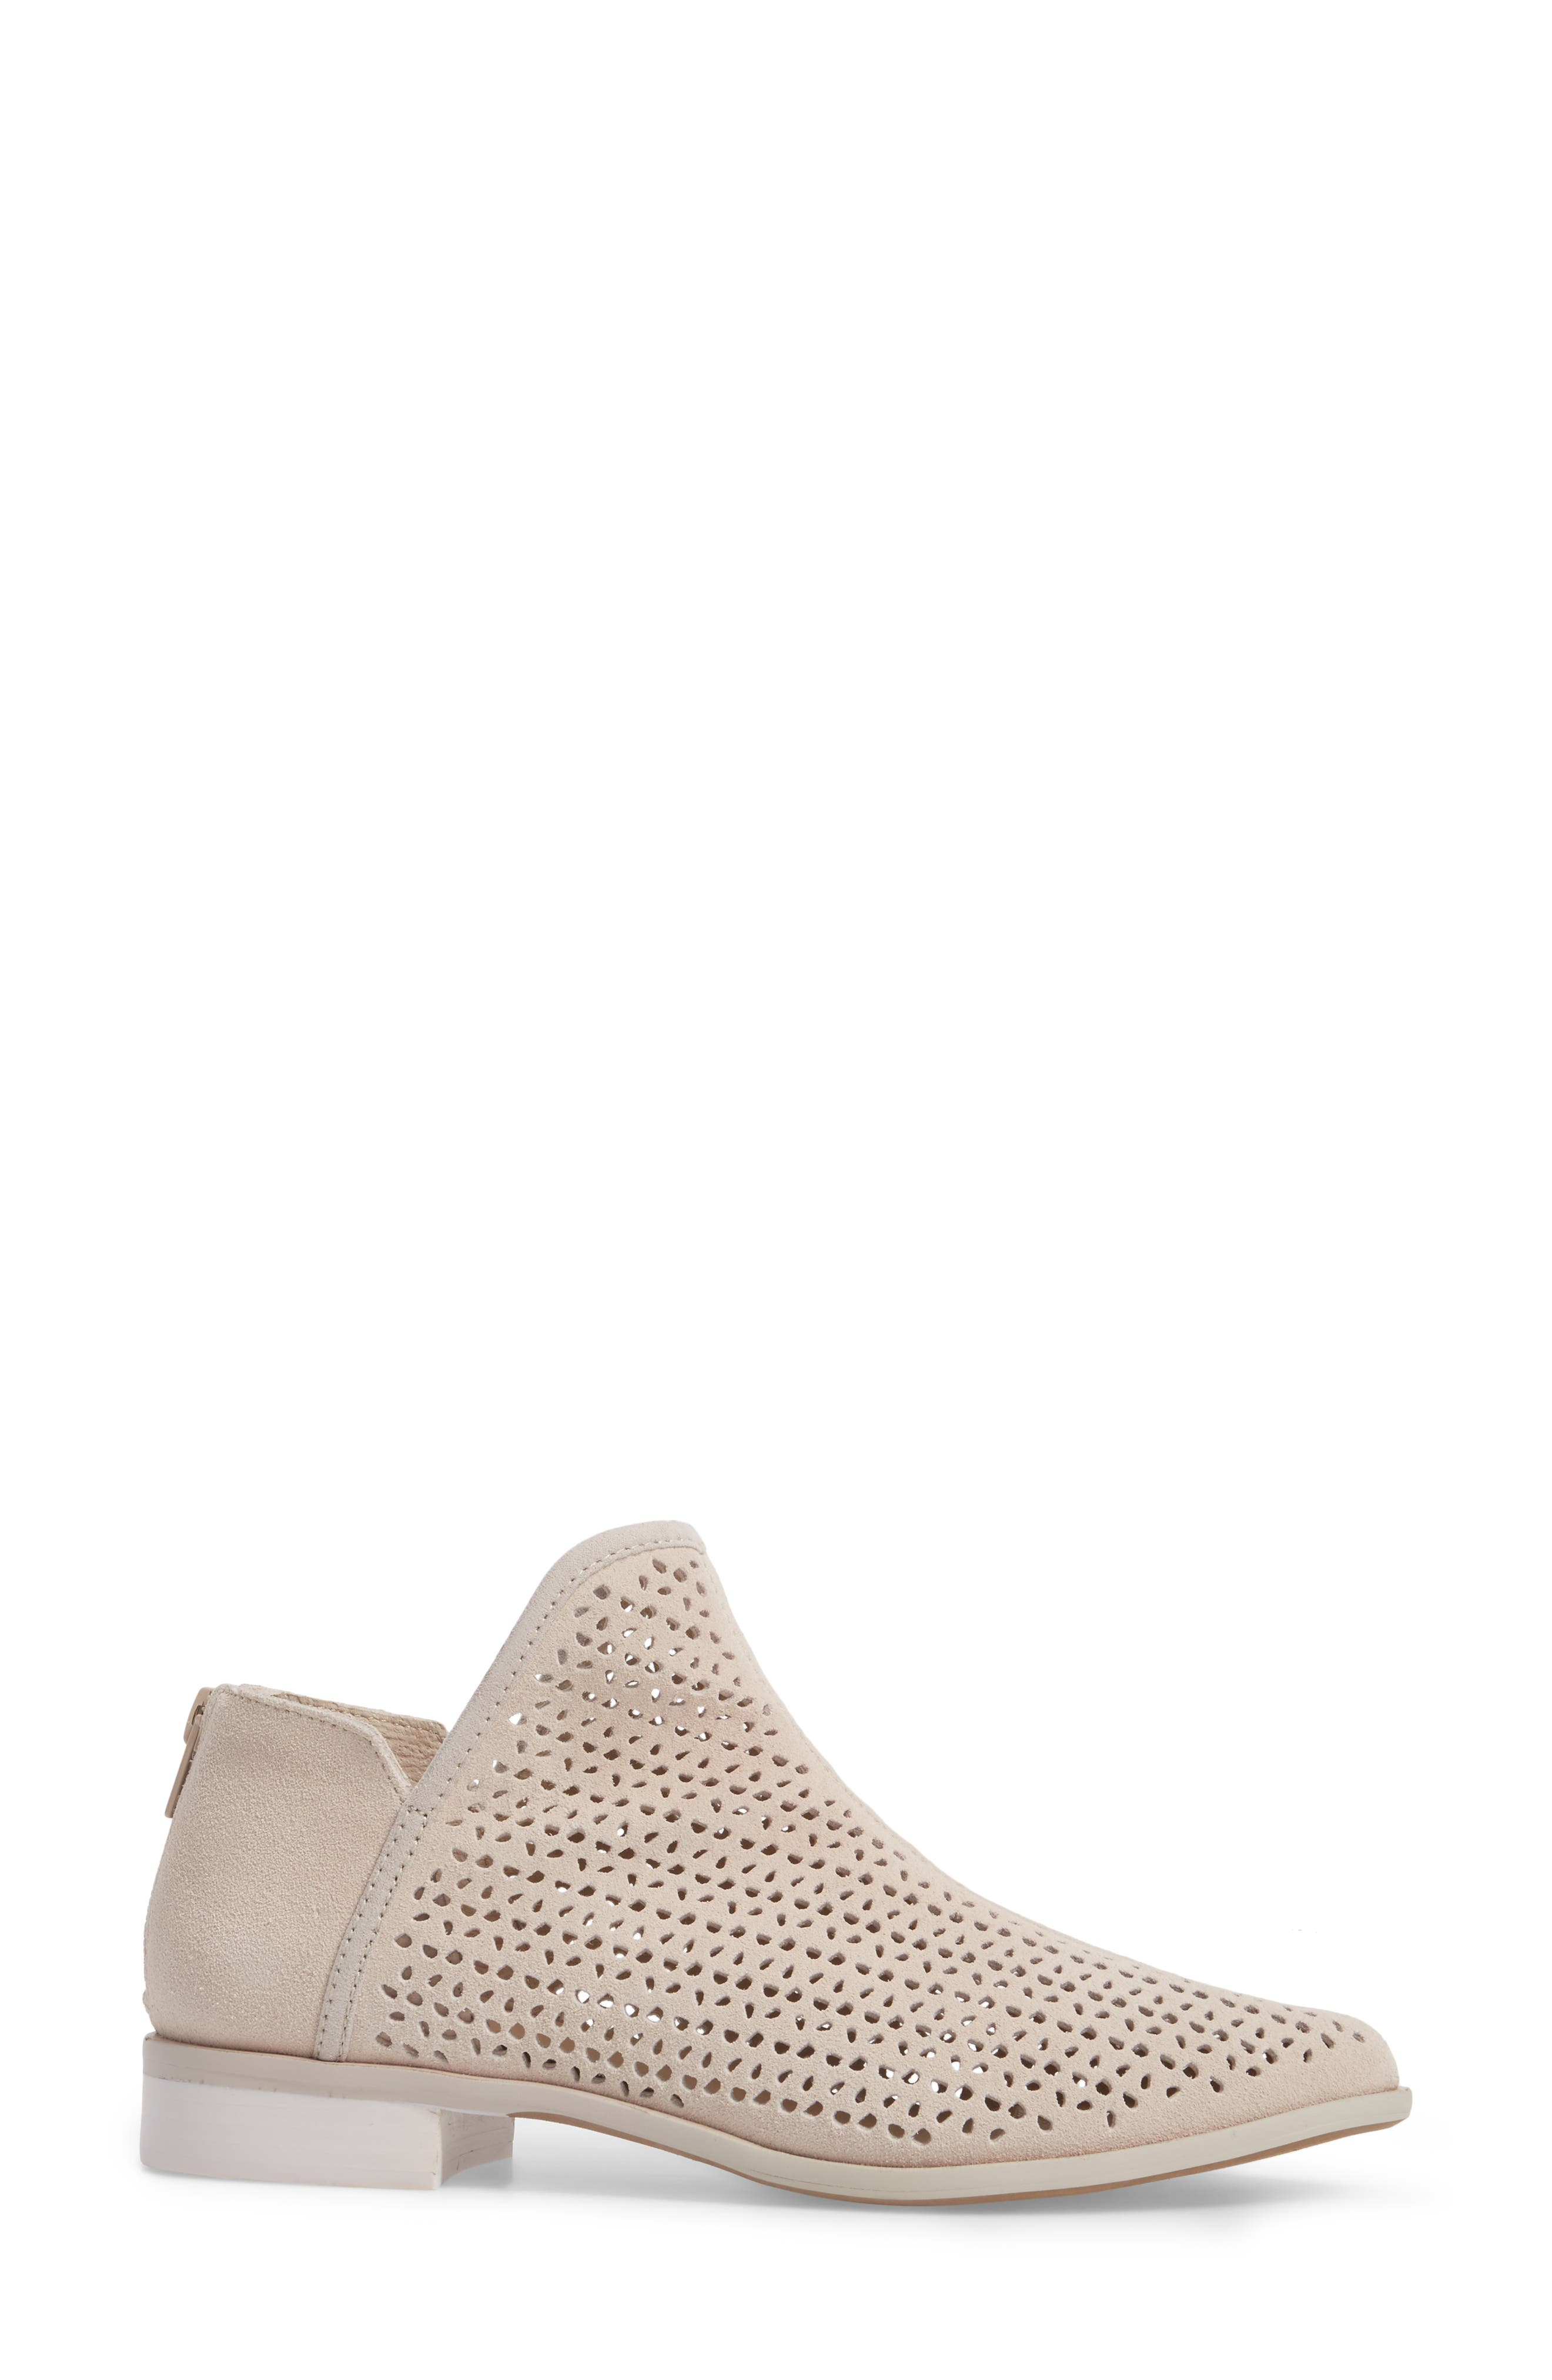 Alley Perforated Bootie,                             Alternate thumbnail 3, color,                             WHEAT